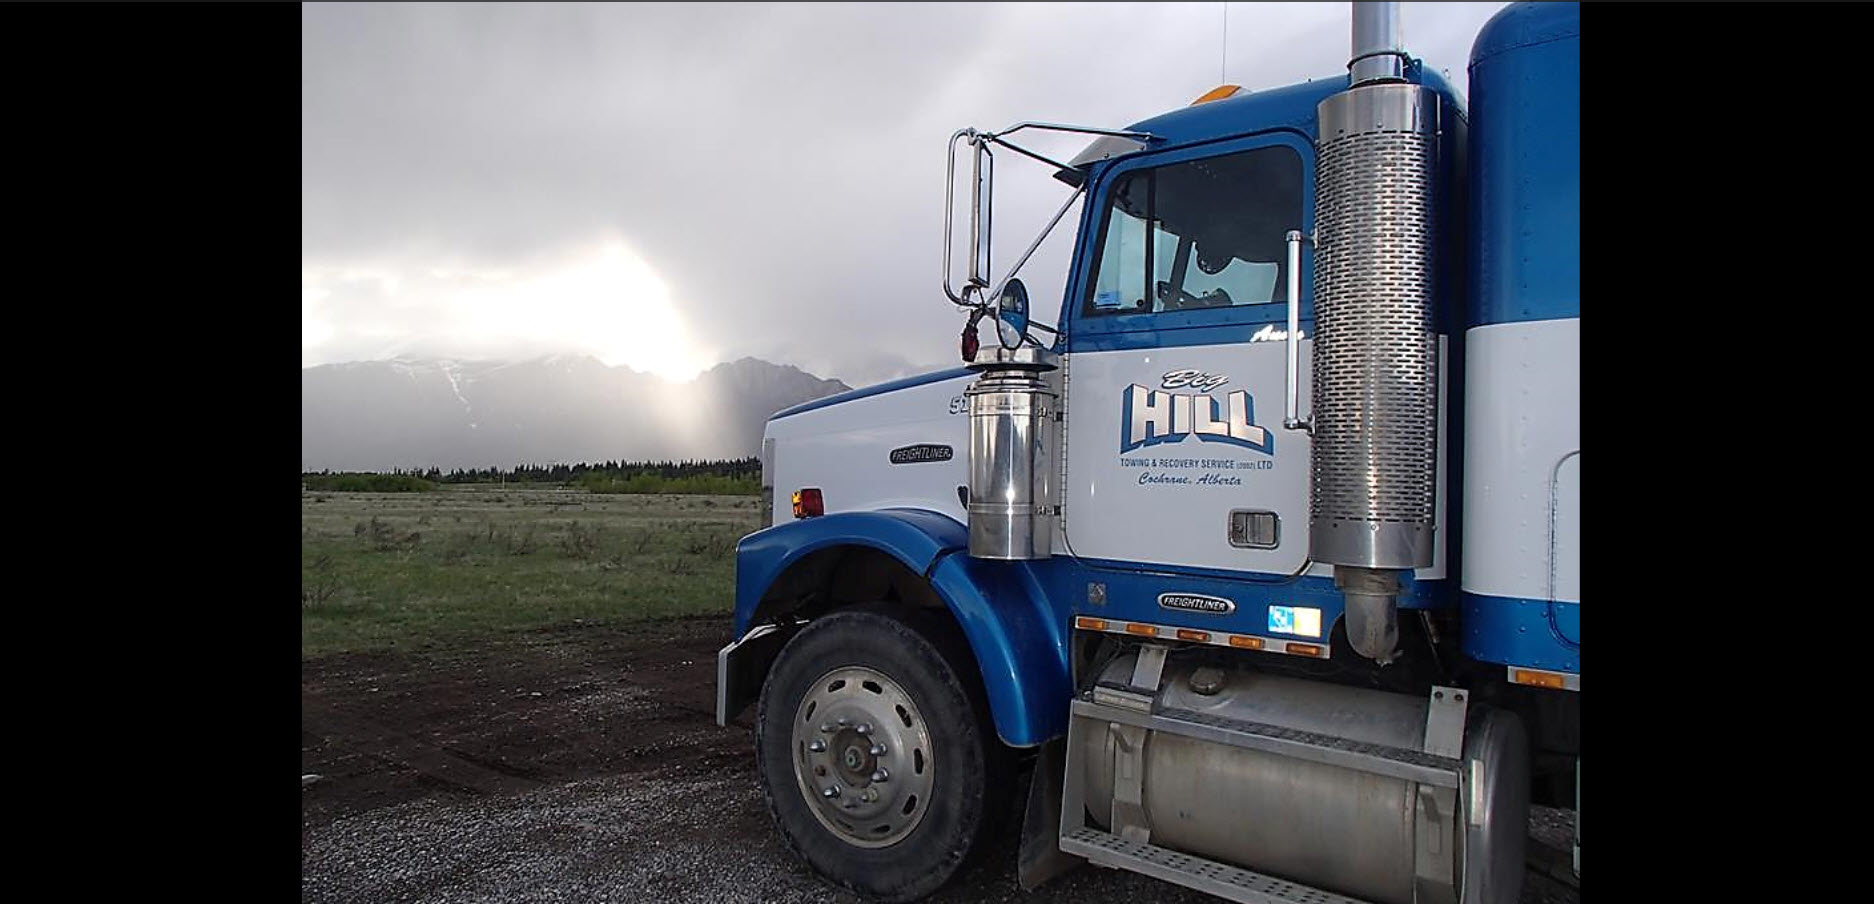 Big Hill Towing & Heavy Duty Repair in Cochrane